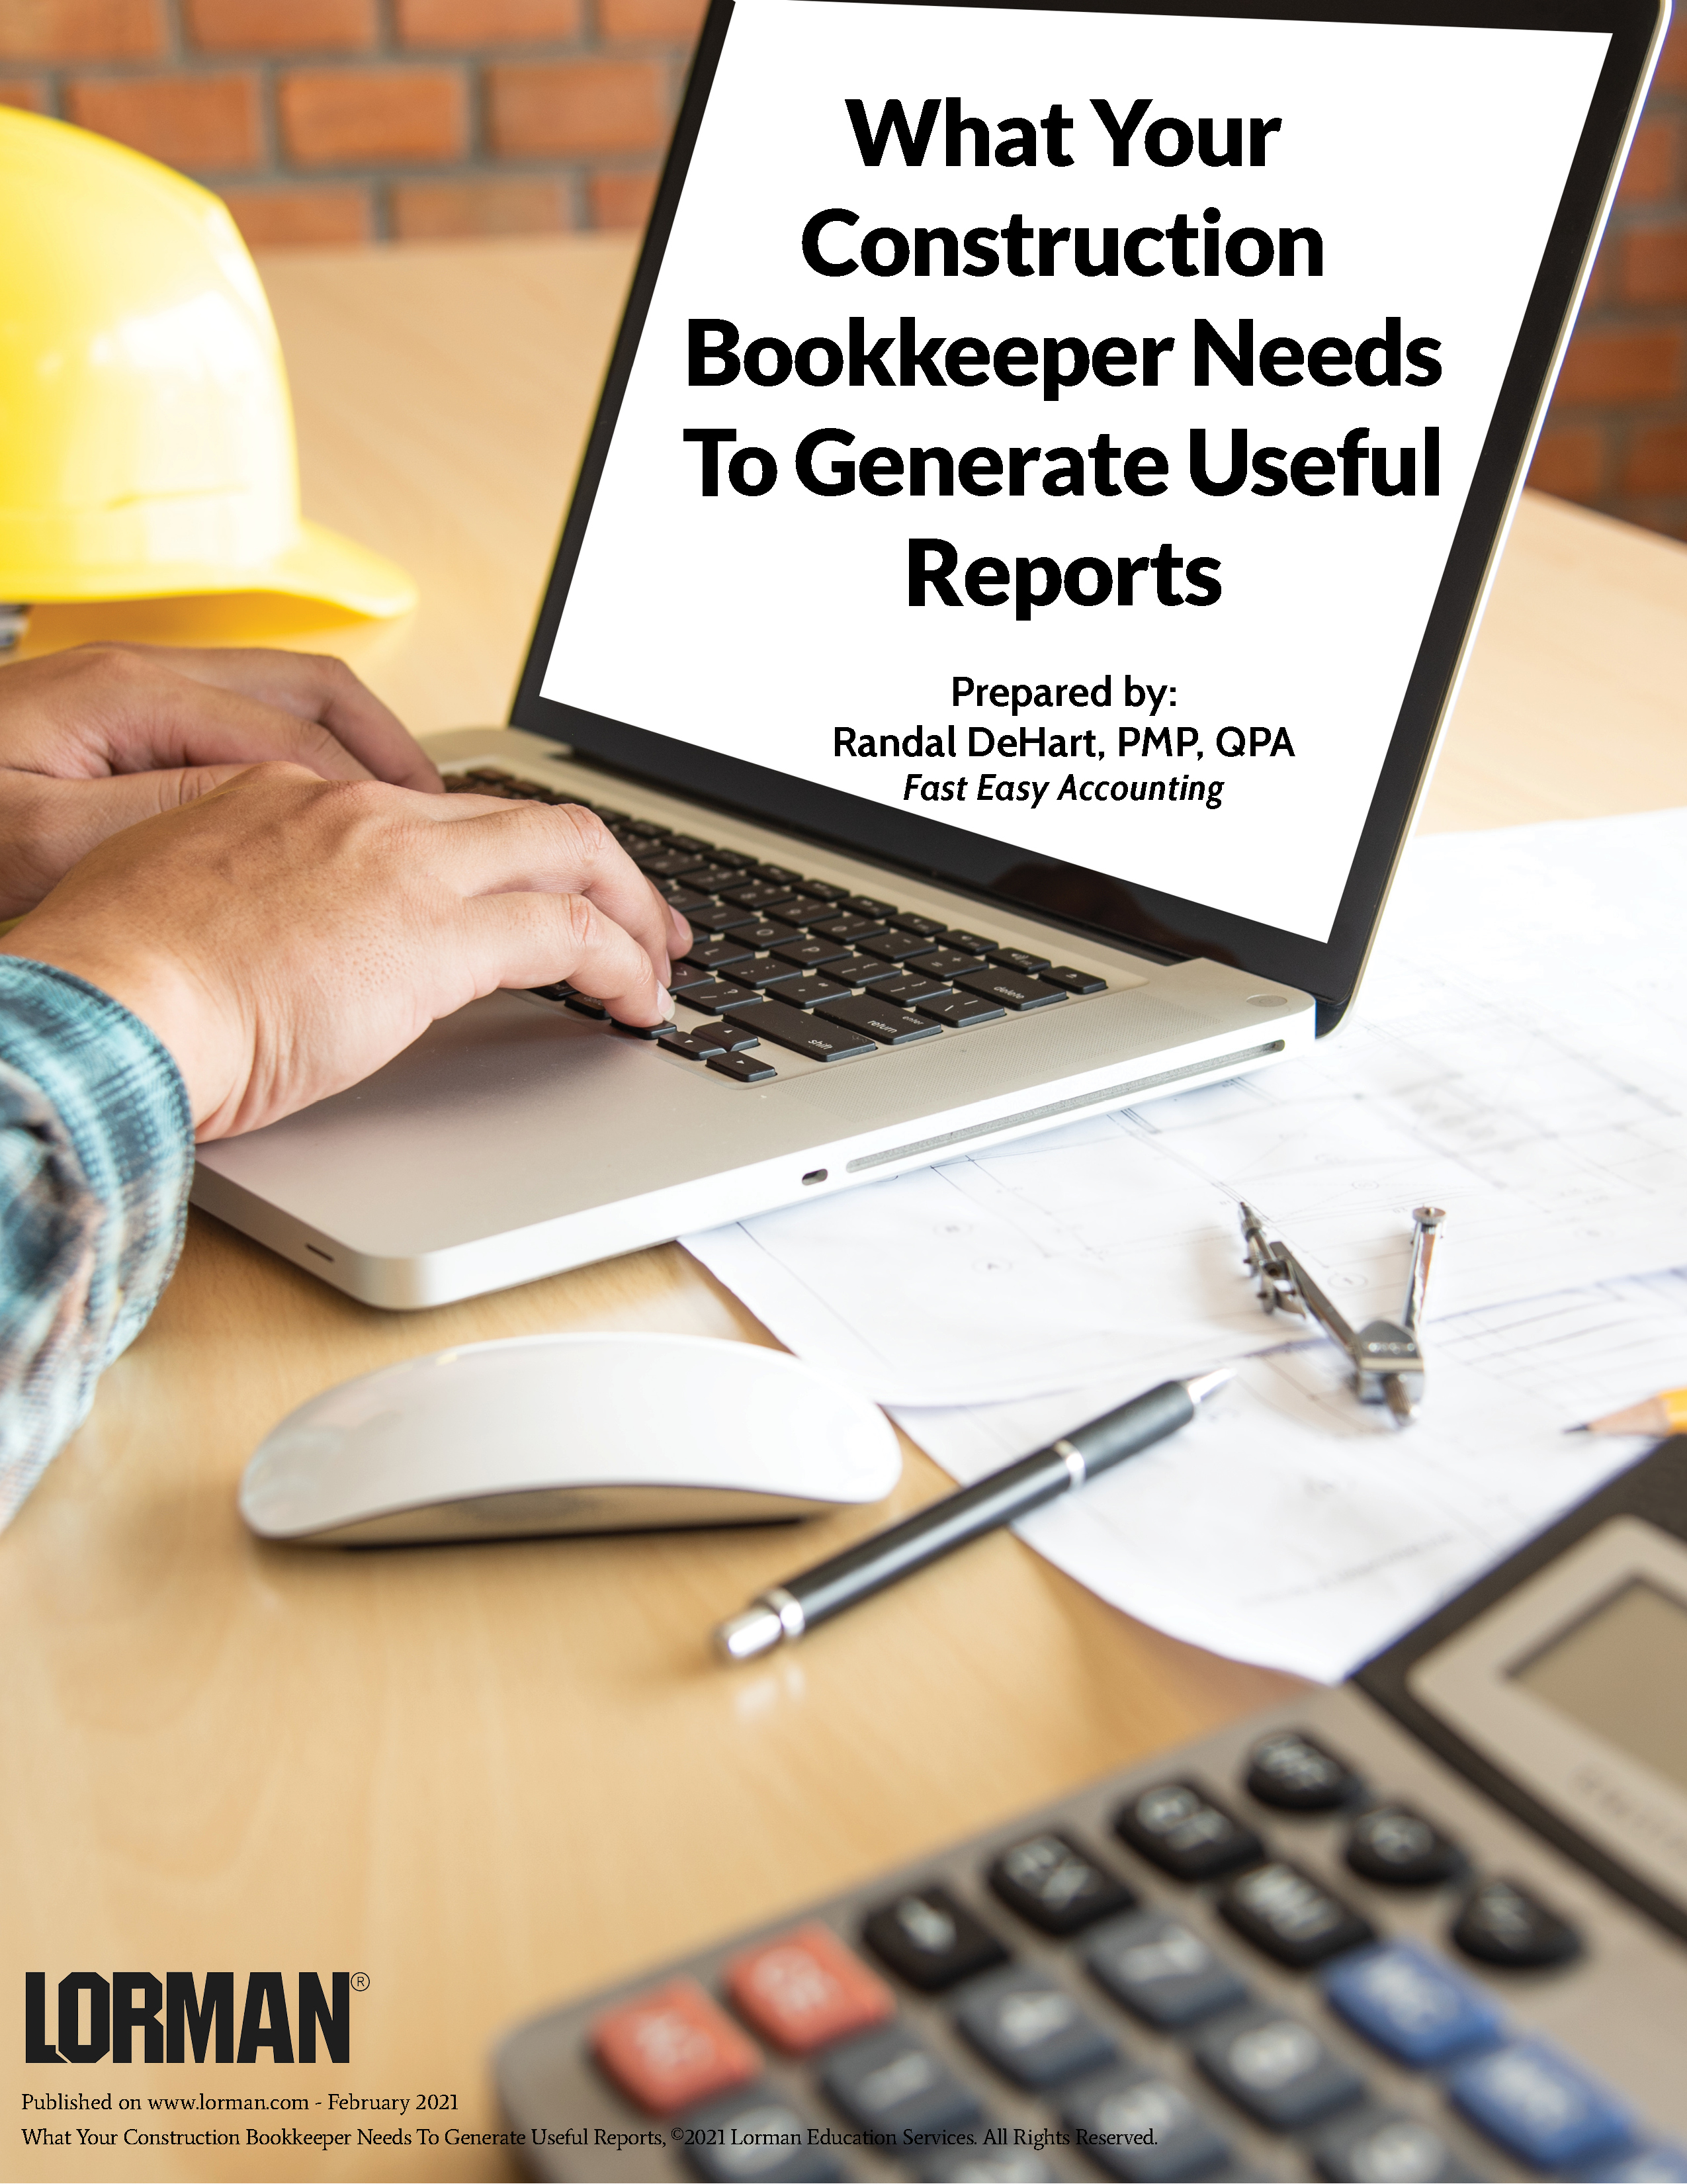 What Your Construction Bookkeeper Needs To Generate Useful Reports